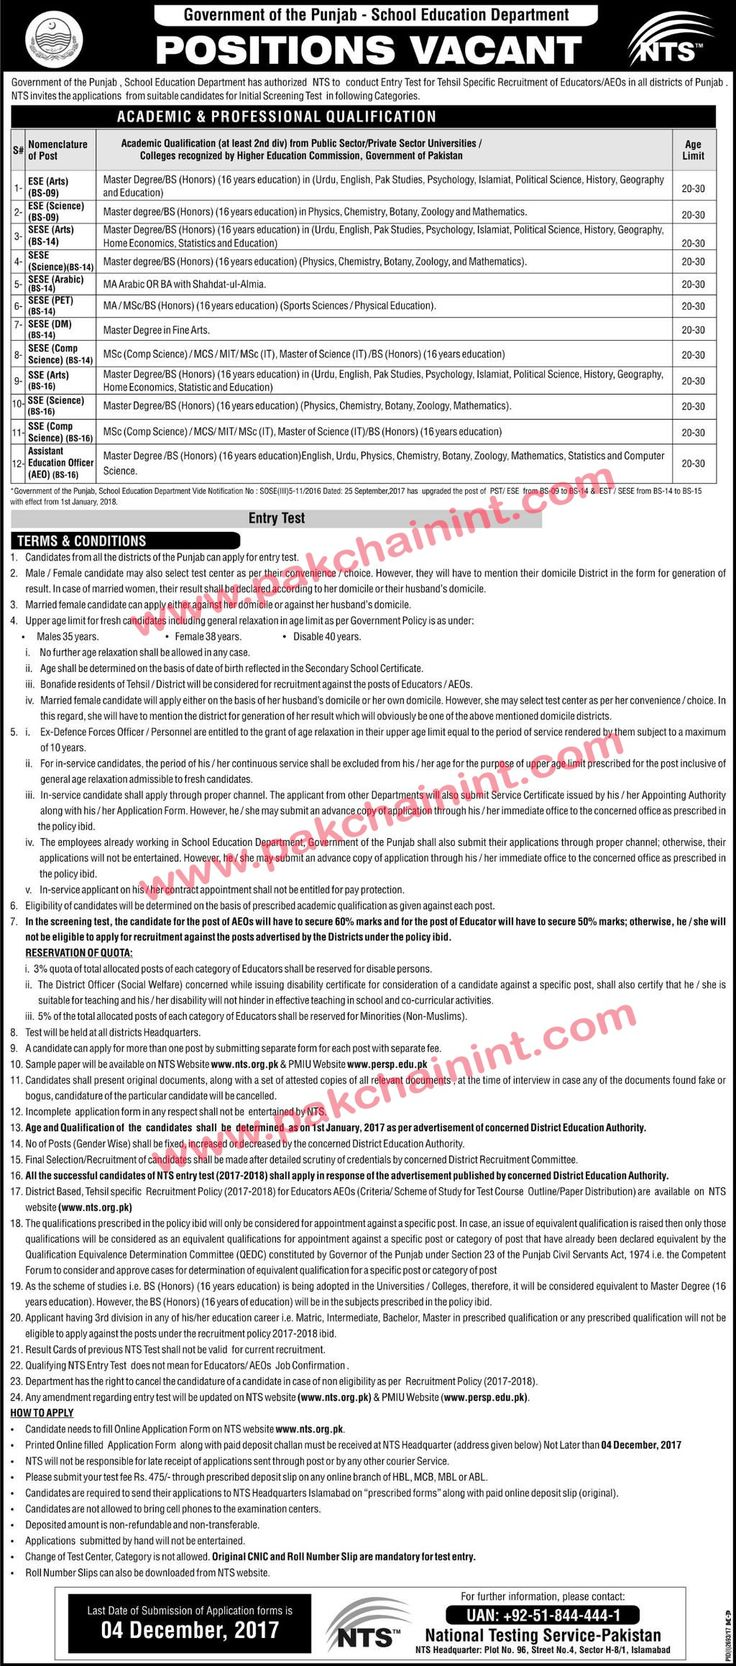 Teacher Jobs in School Education Department ESE 9 to AEO 16 in all districts of Punjab Last date for application submission: 4 December 2017 Government of the Punjab - School Education Department  POSITIONS VACANT   Government of the Punjab School Education Department has authorized NTS to conduct Entry Test for Tehsil Specific Recruitment of Educators/AEOs in all districts of Punjab.   #16 #9 #Advertisement #aeo #all district #all paper jobs #Application #chain #